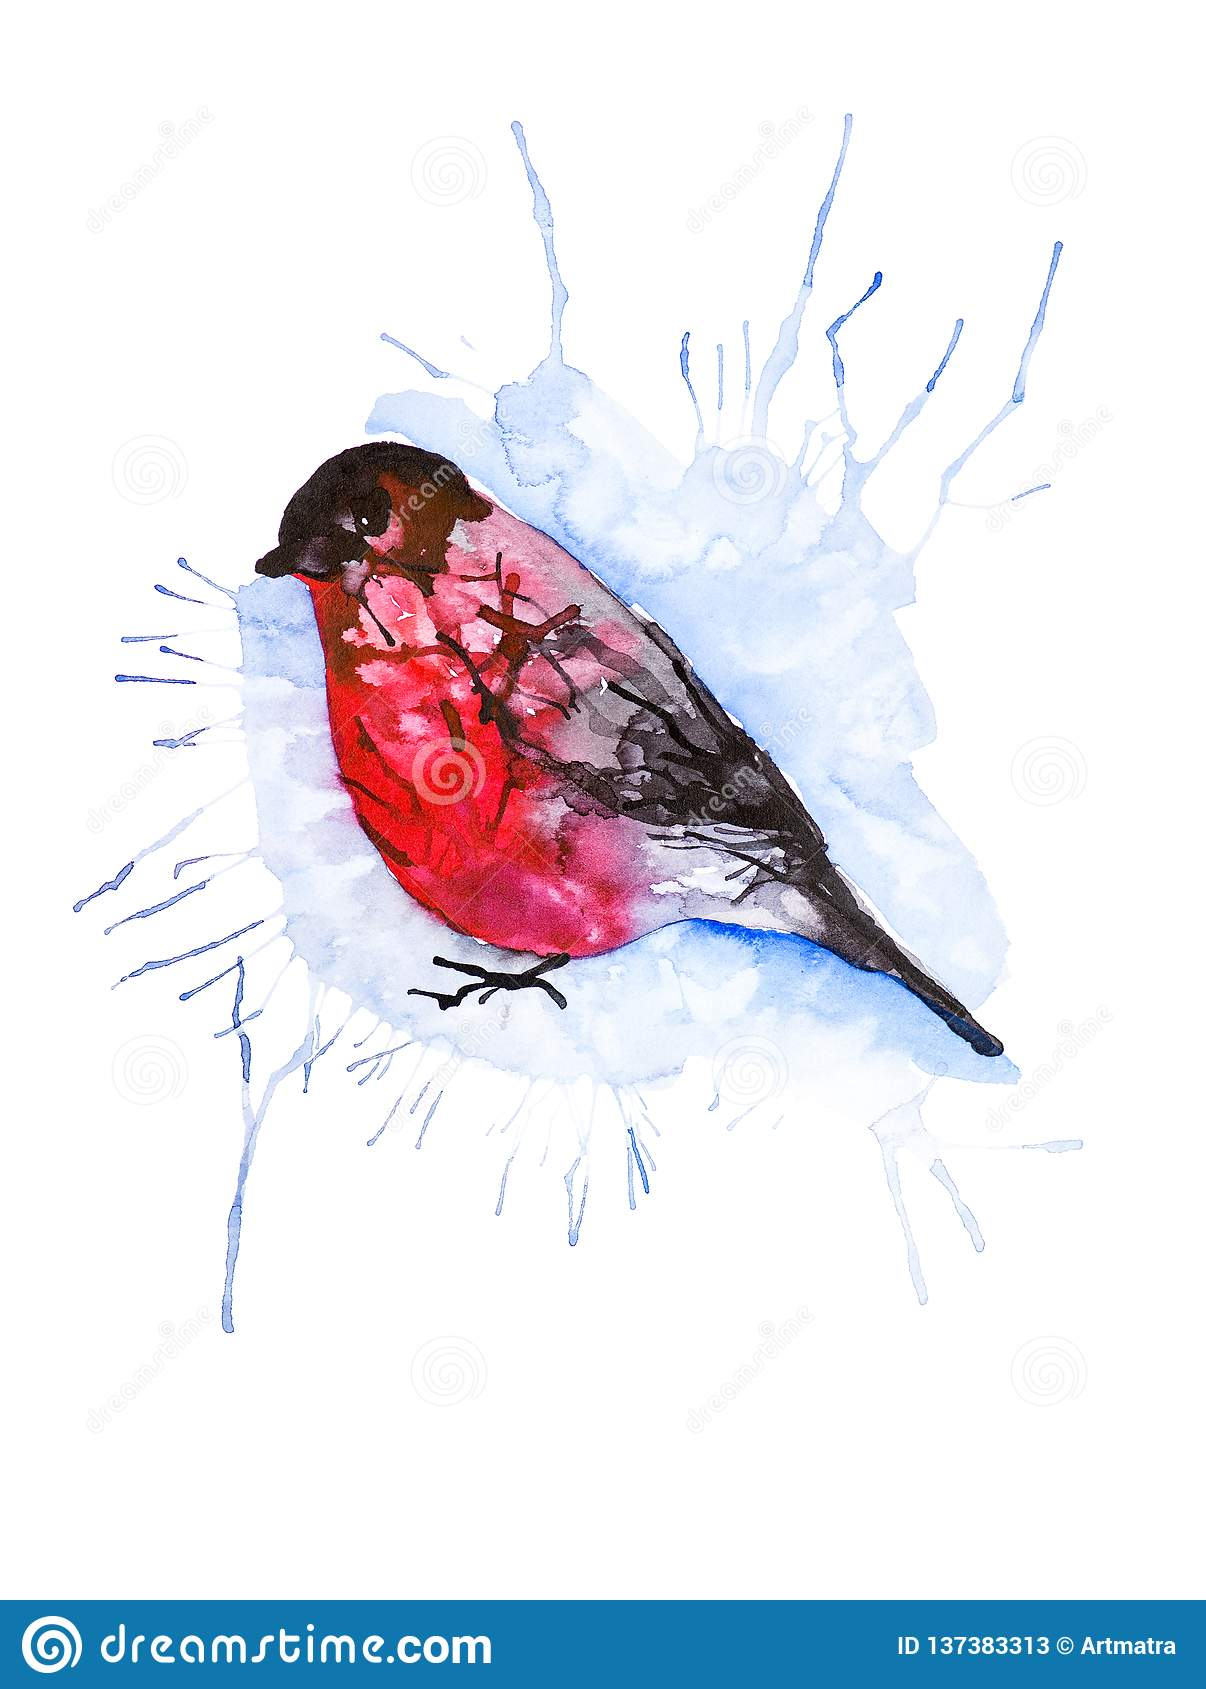 Absrtact watercolor illustration of a bullfinch bird isolated on white background